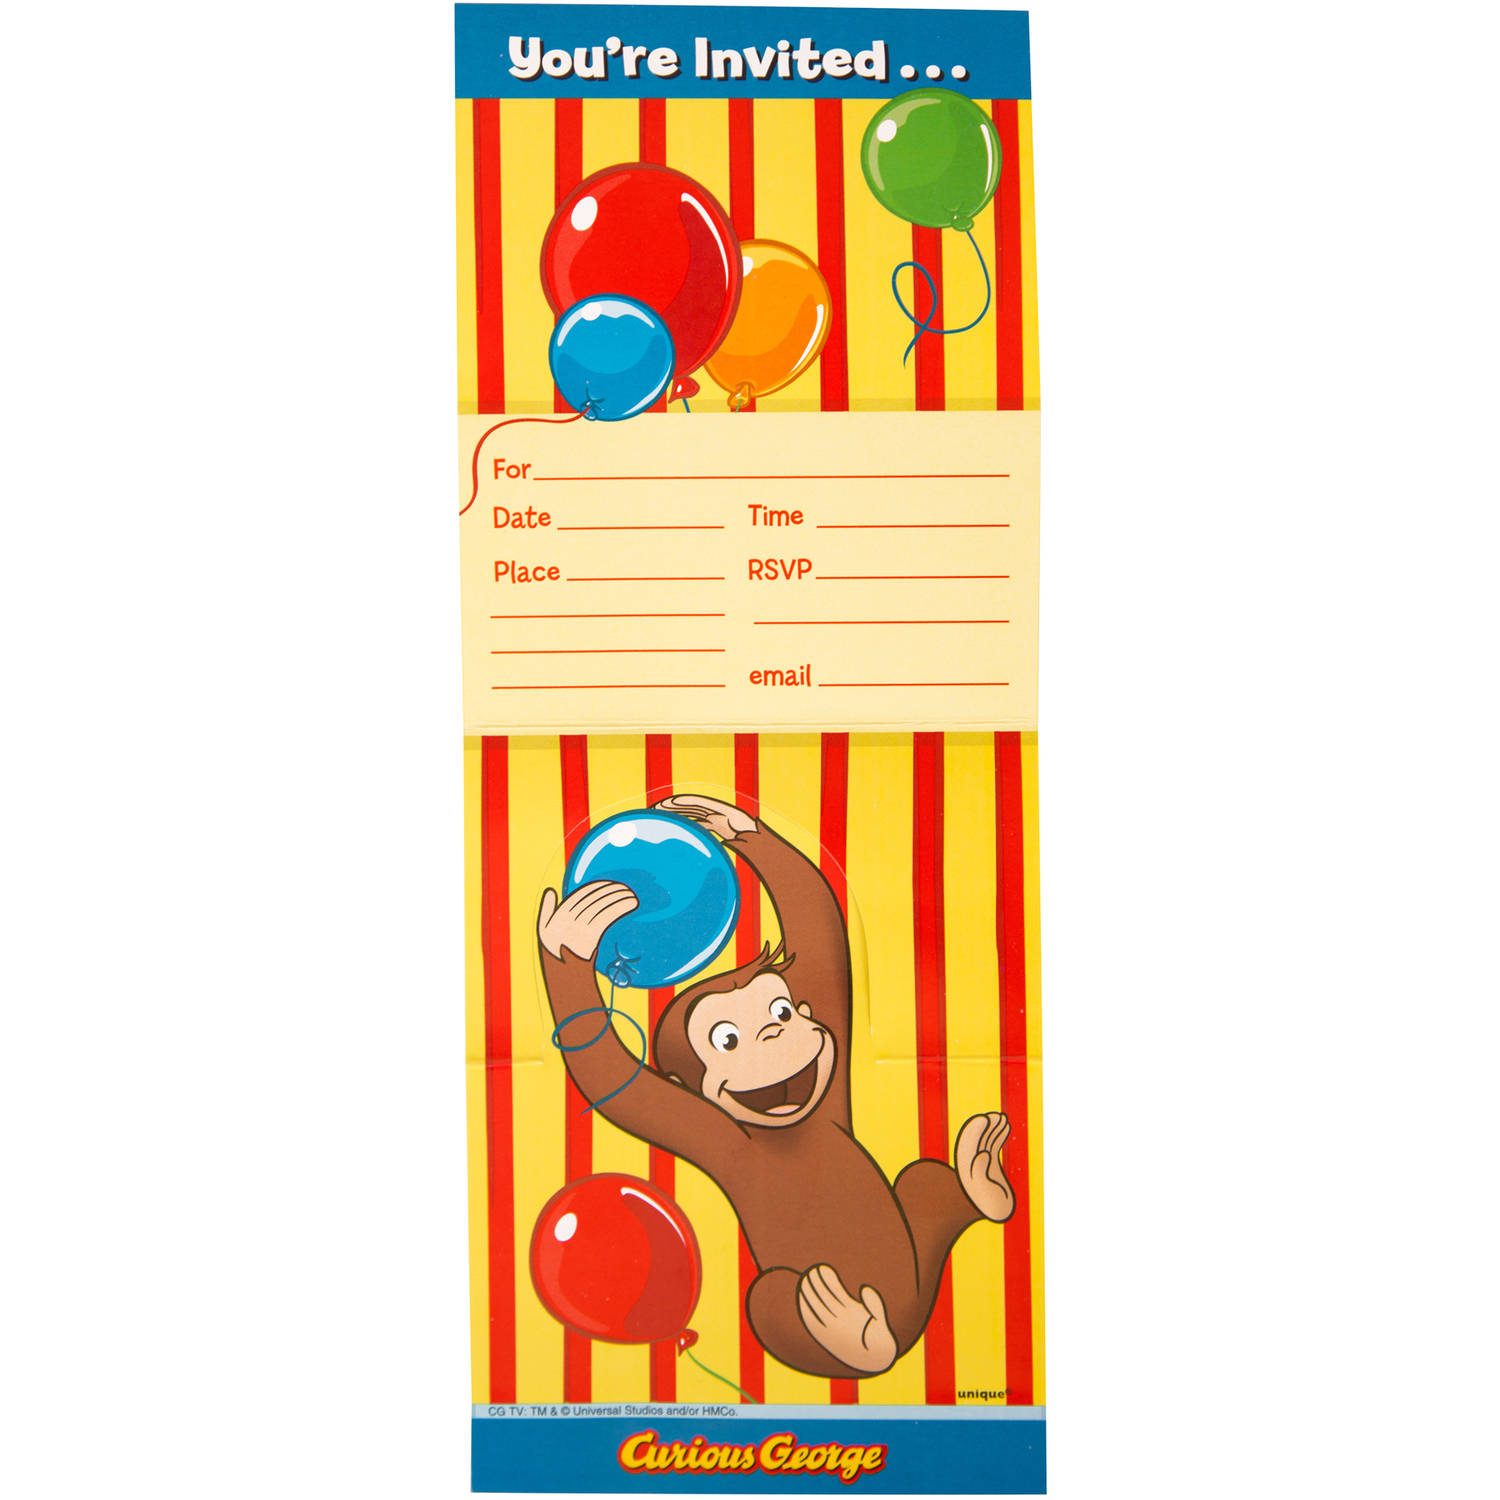 curious george birthday invitation template ; curious-george-party-invitations-for-your-Party-Invitation-Templates-with-nice-looking-design-idea-15